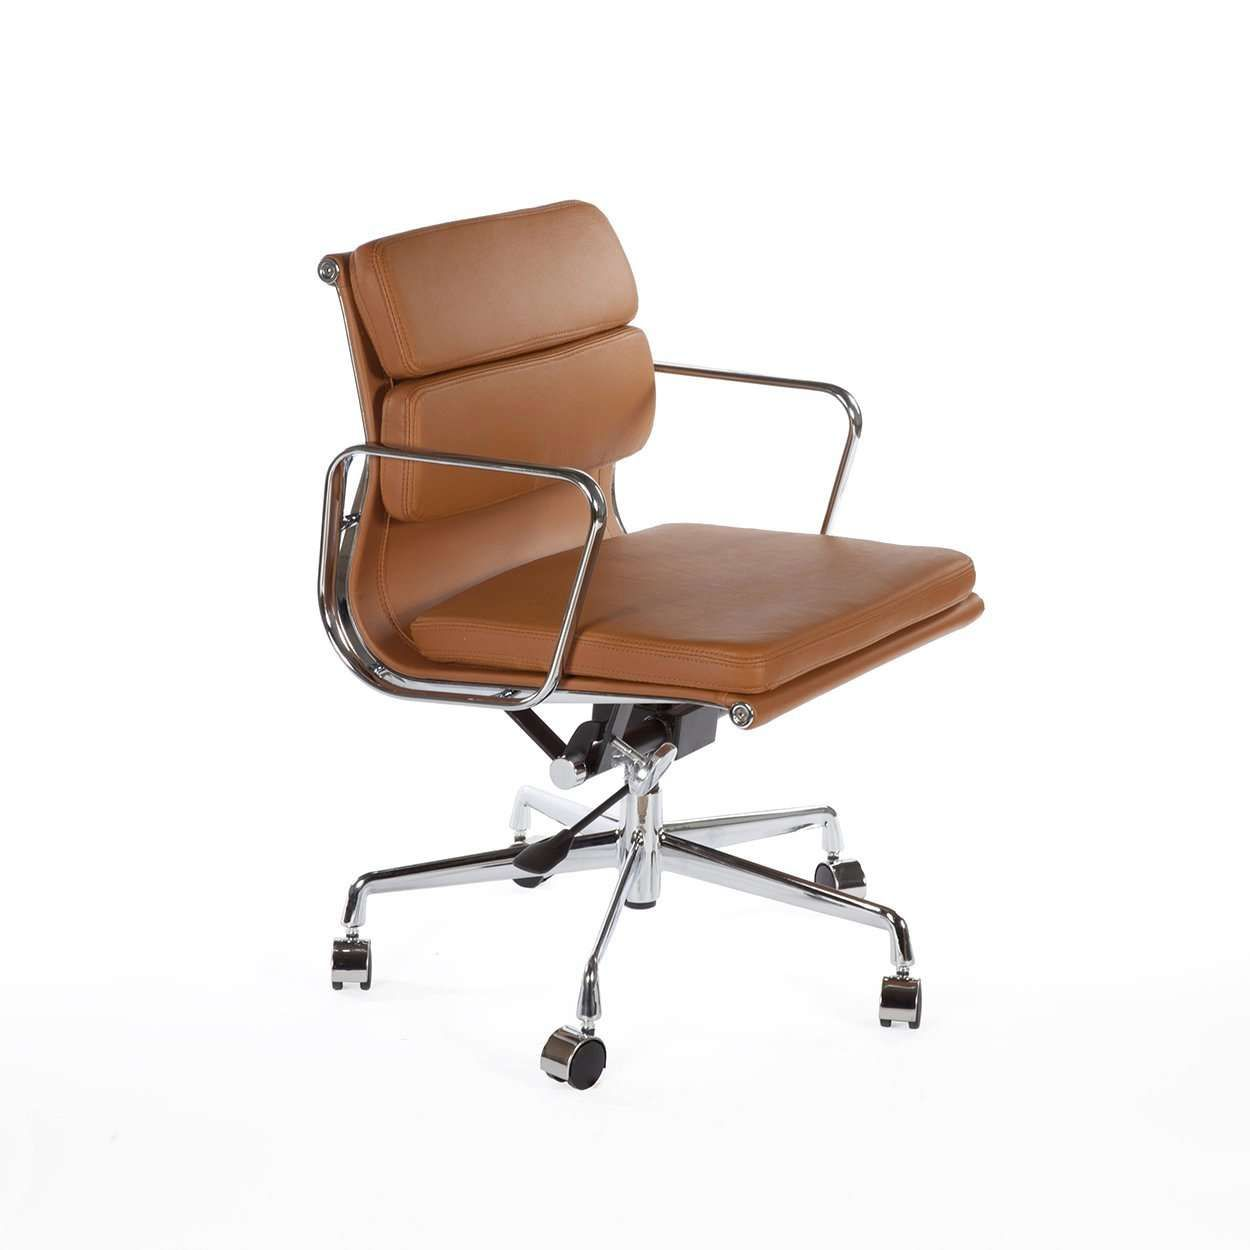 Low Back Padded Leather Office Chair Brown In 2020 Mid Century Modern Office Chair Mid Century Modern Desk Chair Brown Leather Office Chair